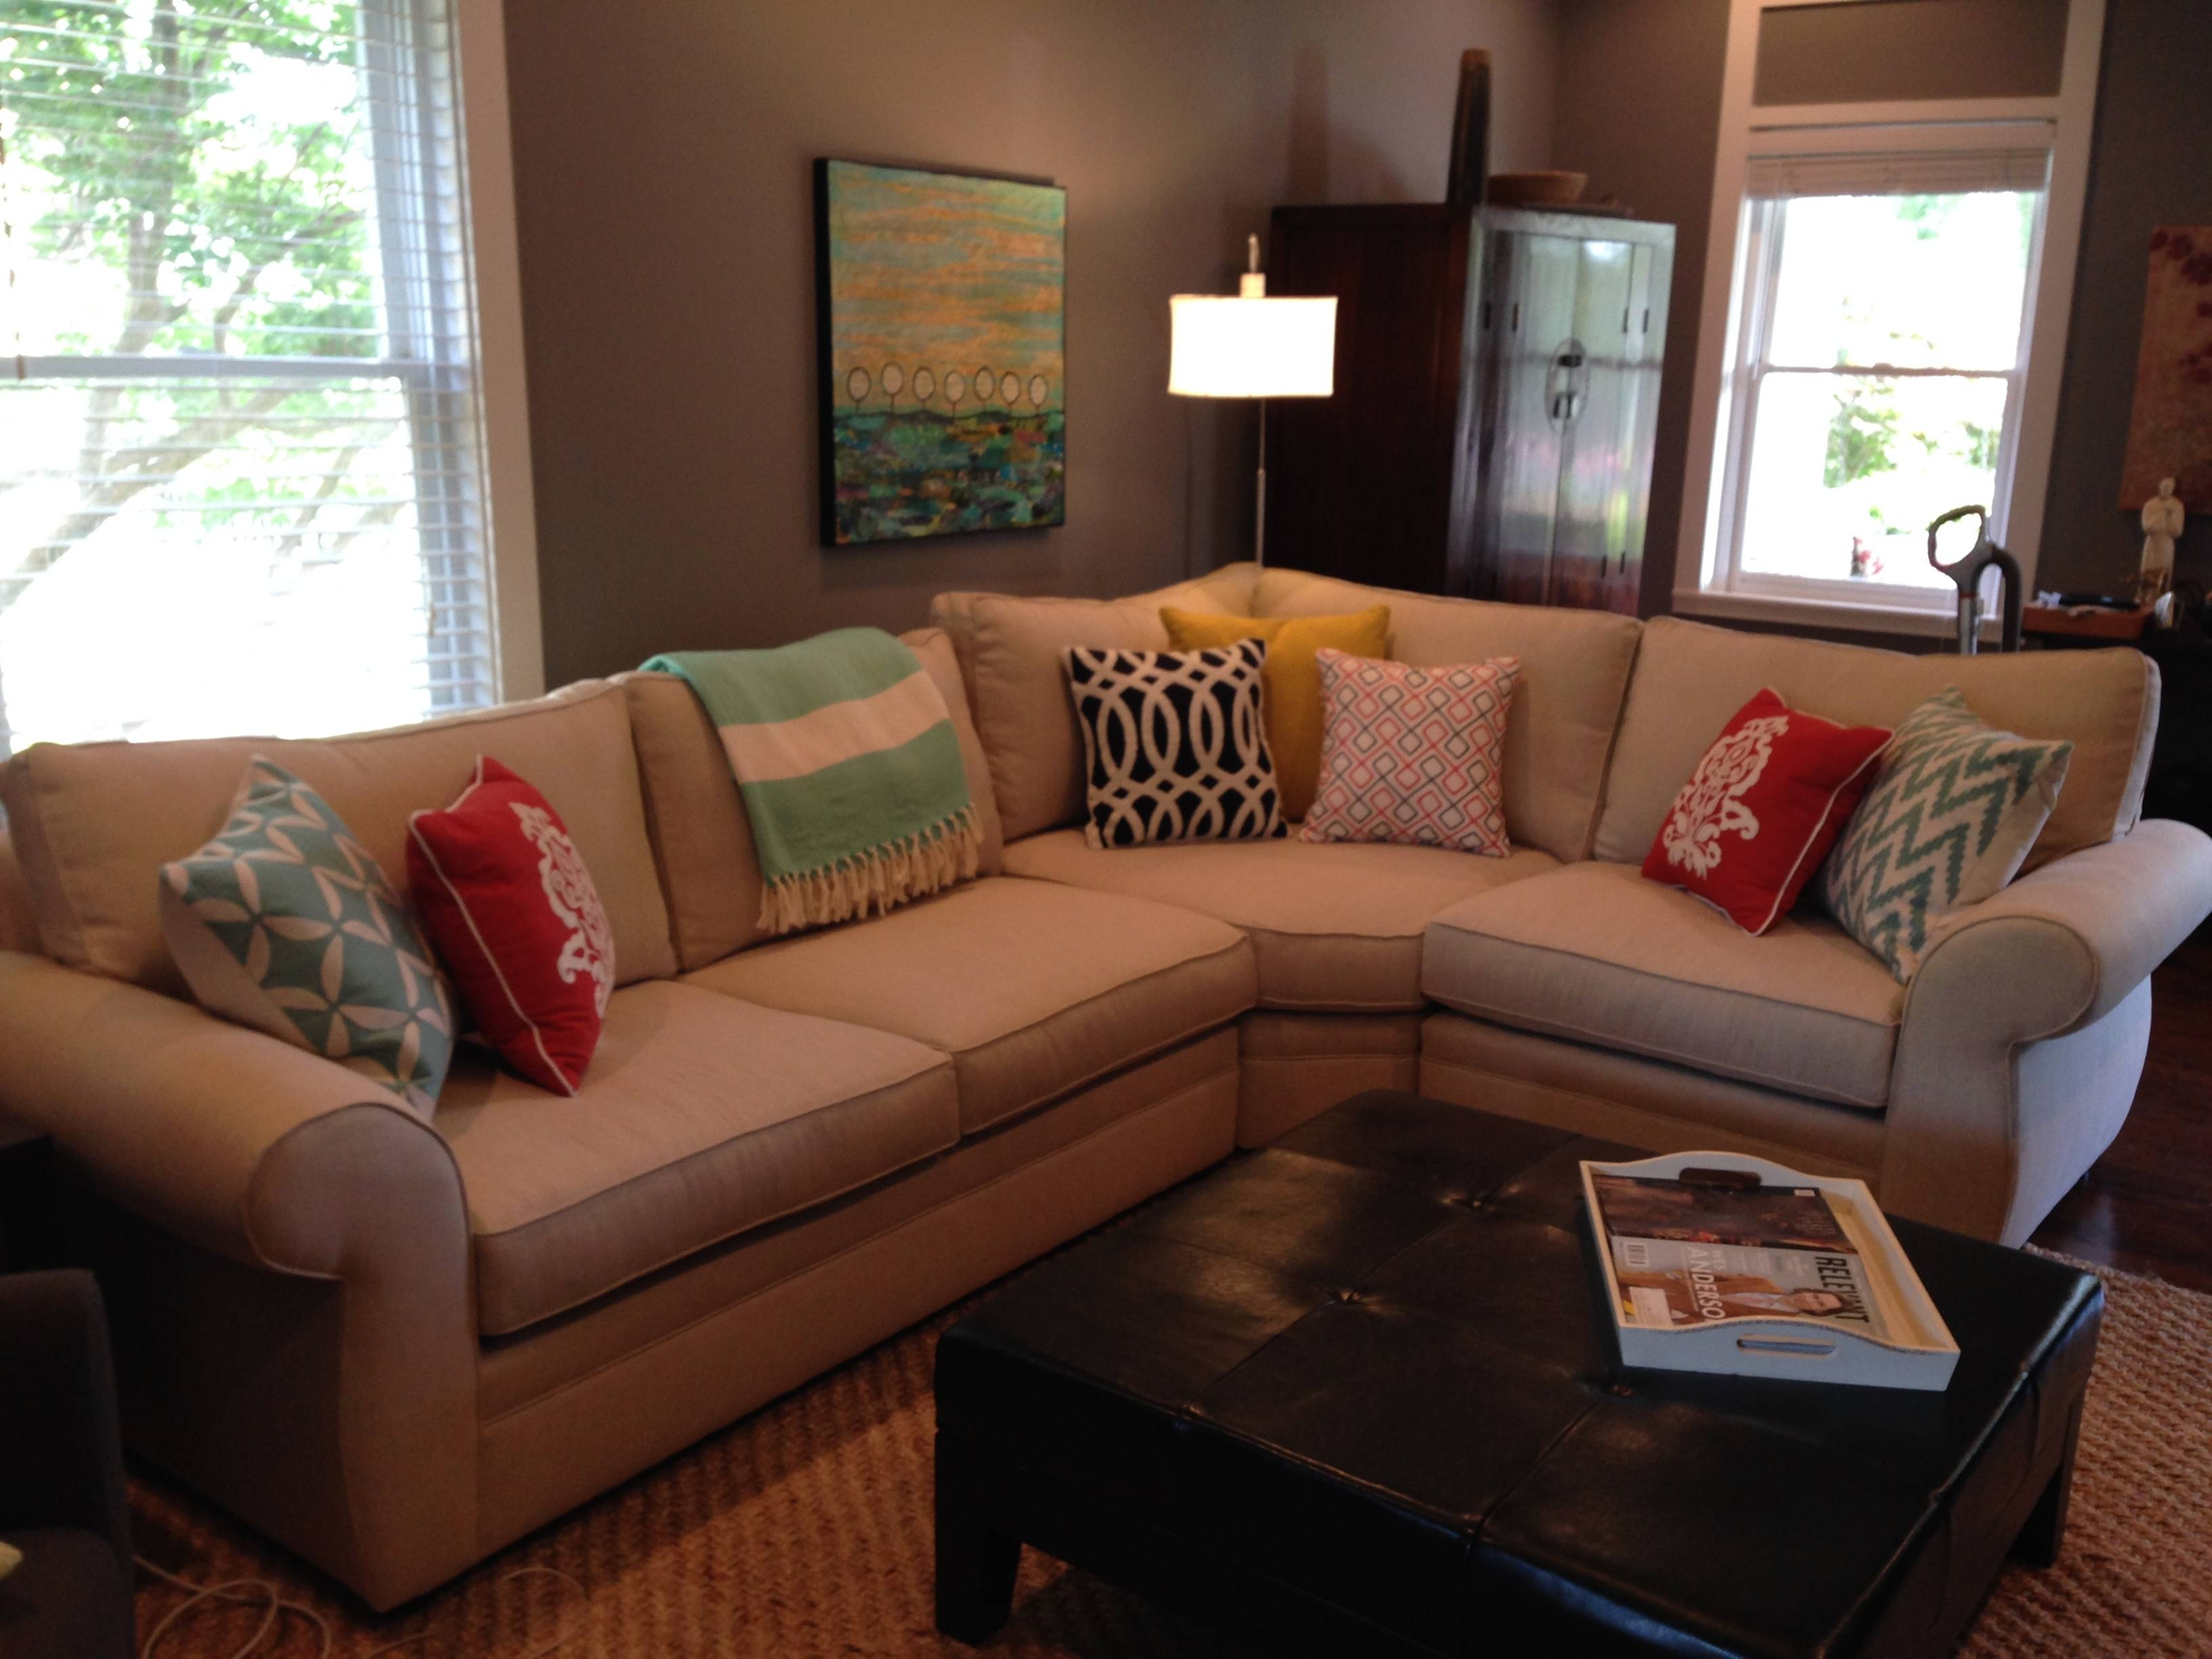 The Best Pottery Barn Pearce Sectional Sofas